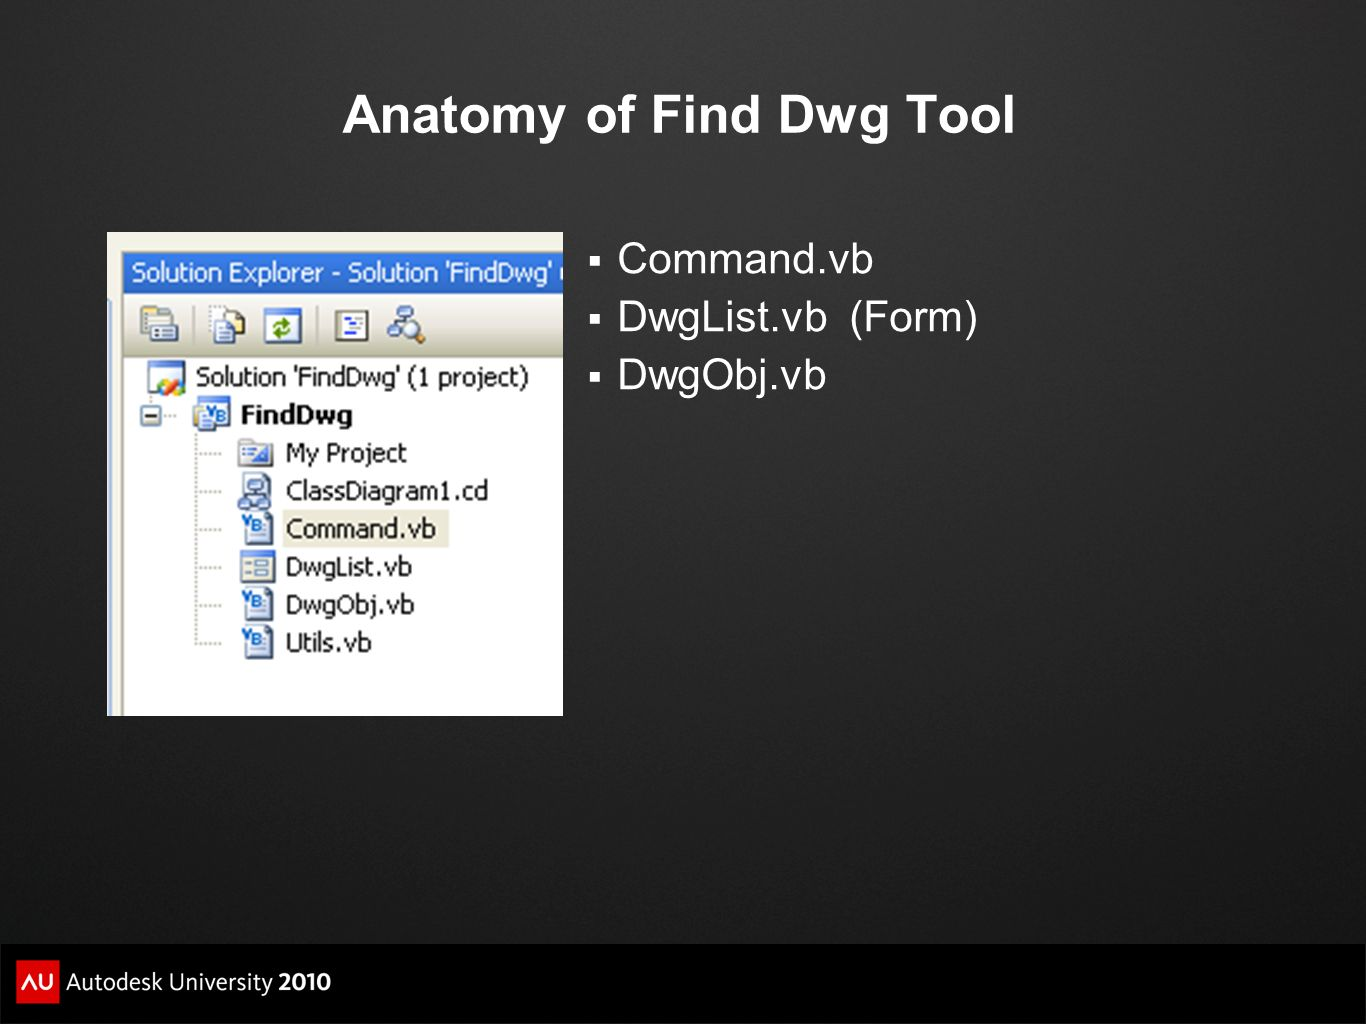 Anatomy of Find Dwg Tool